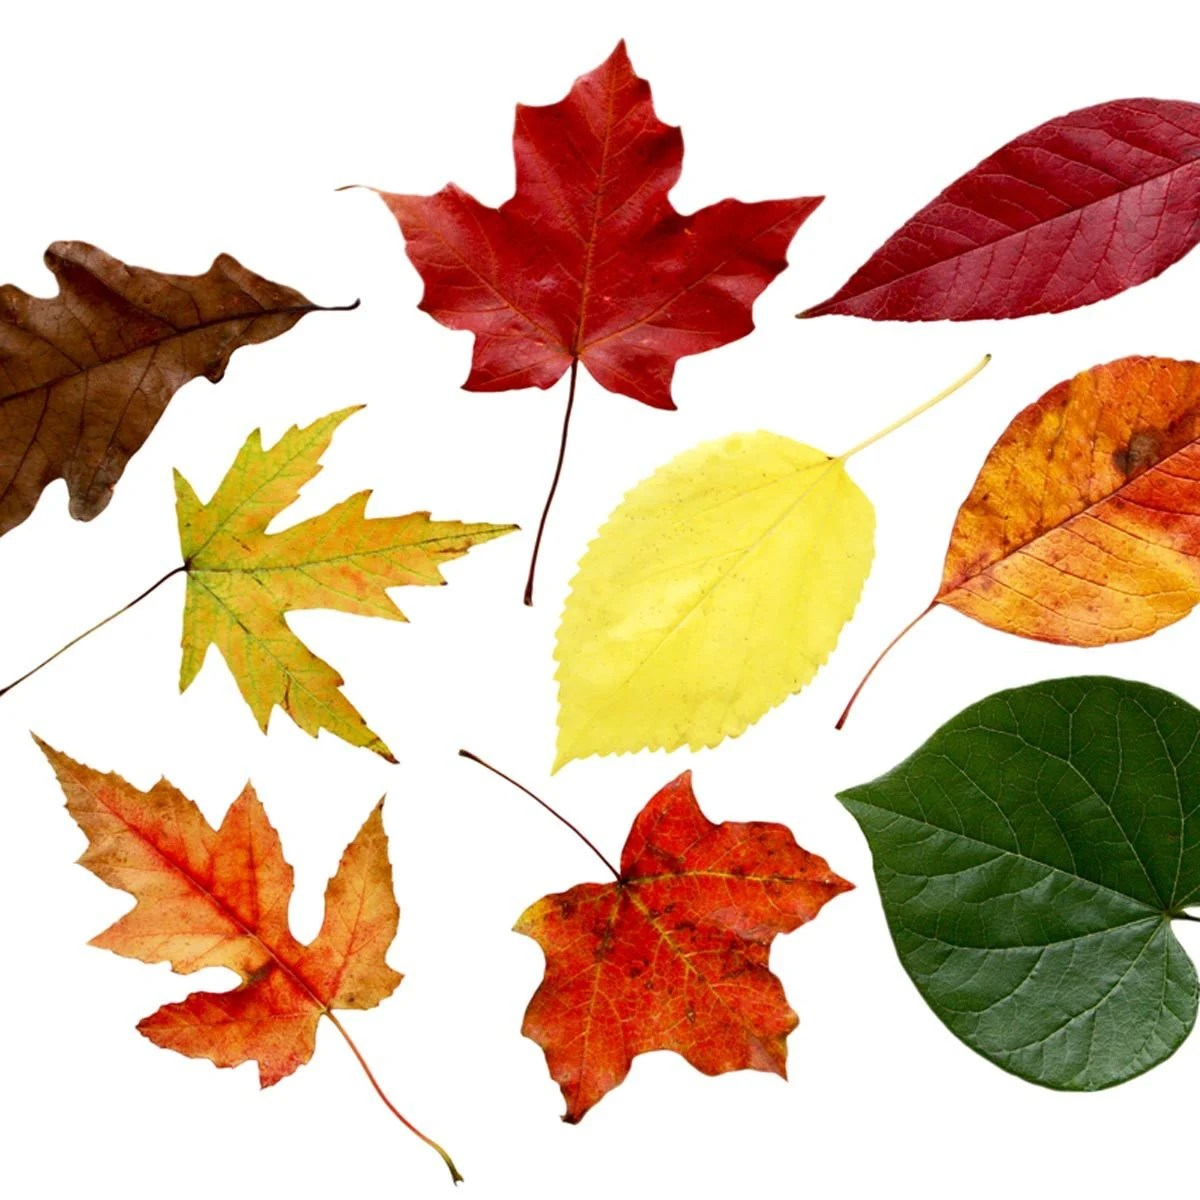 Tree Identification How To Identify Different Types Of Trees